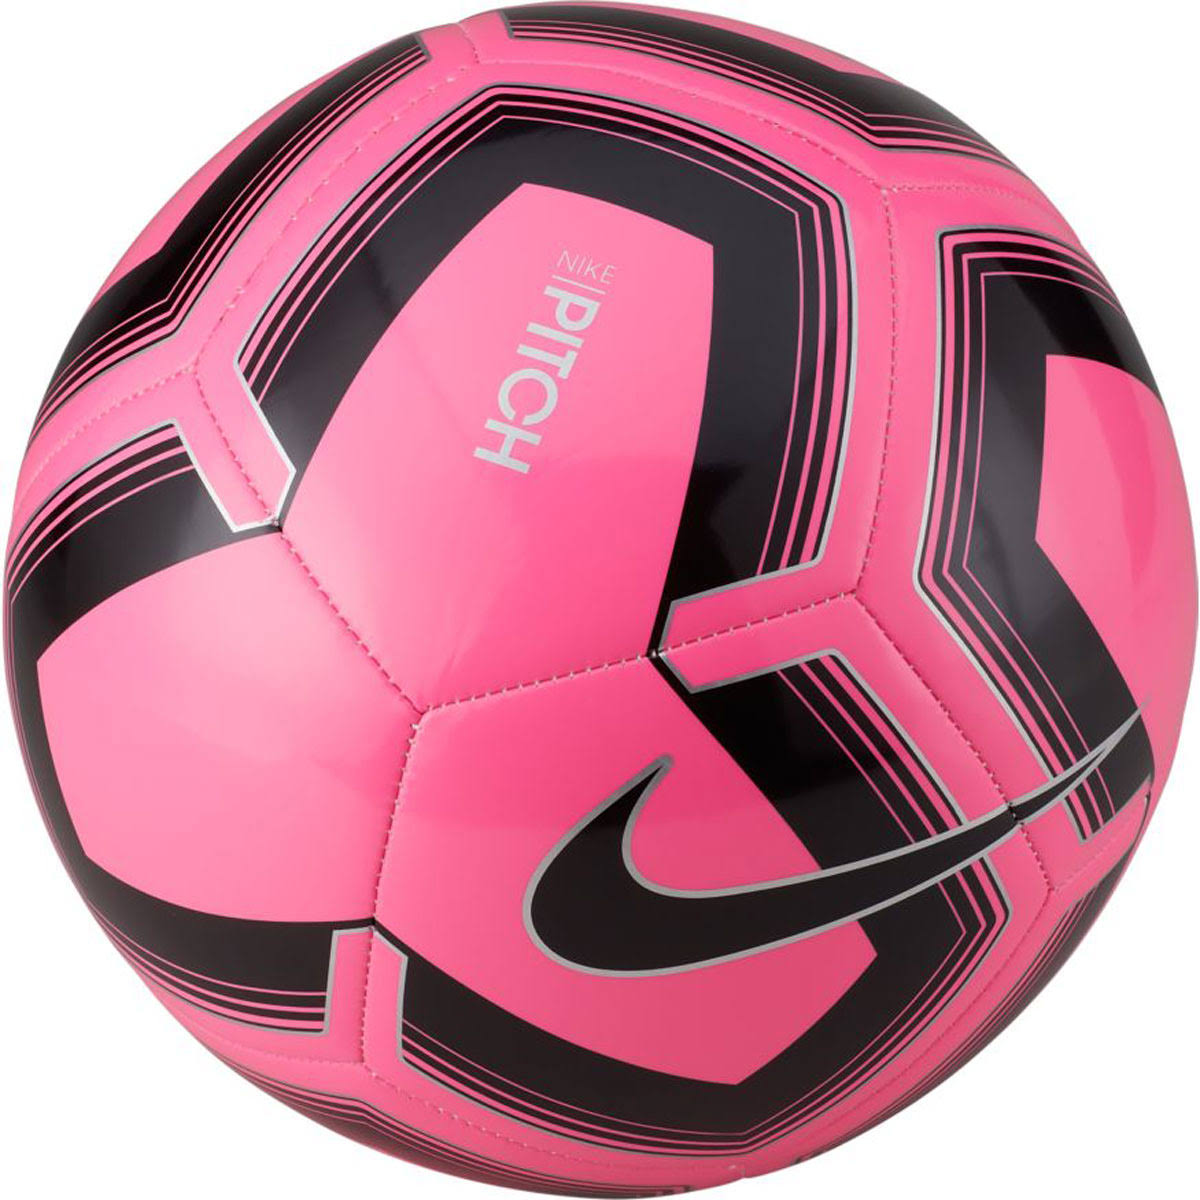 Nike Pitch Training Soccer Ball (Pink/Black) 4